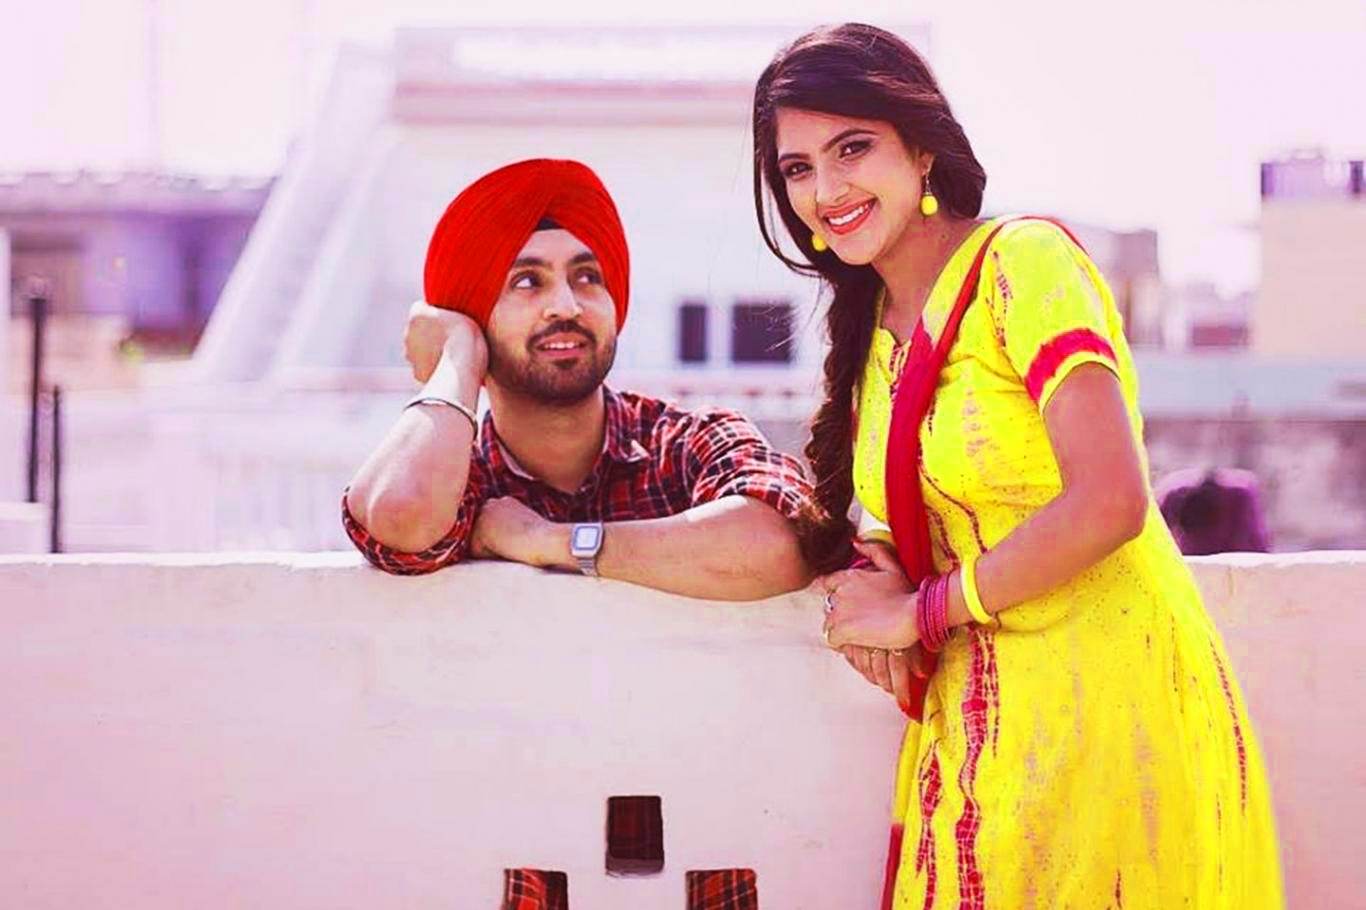 Sweet Cute Punjabi Wedding Lover Love Couple Pictures Wallpaper HD Download